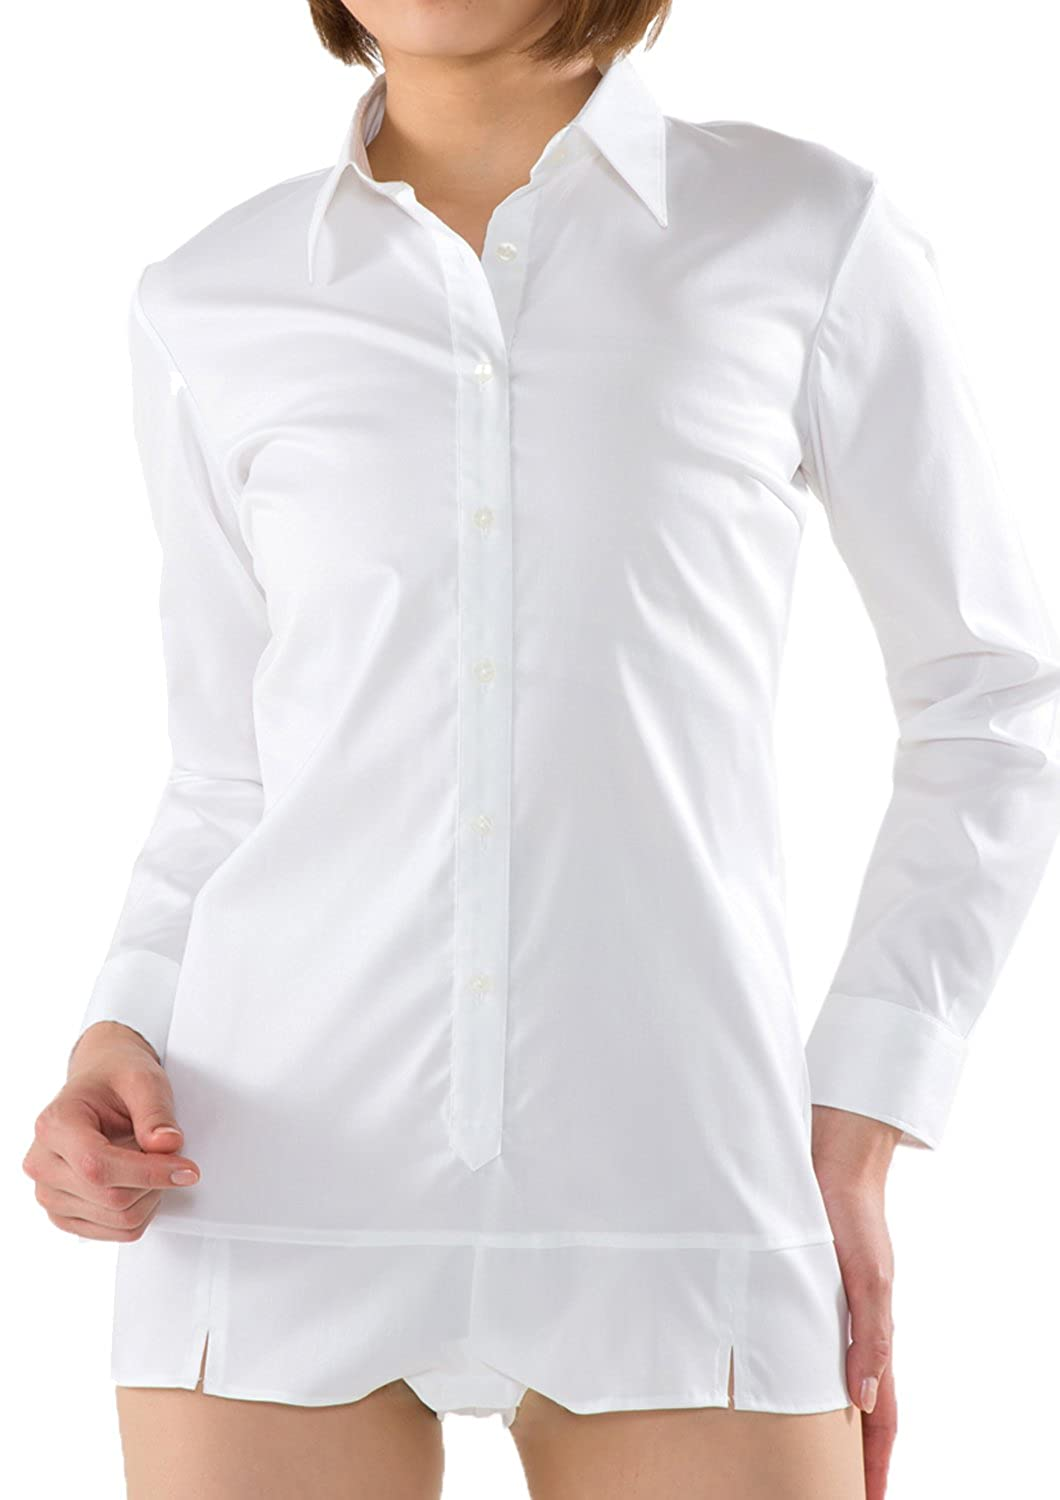 Leonis Womens Premium Stretch Easy Care Bodysuit Shirt At Amazon